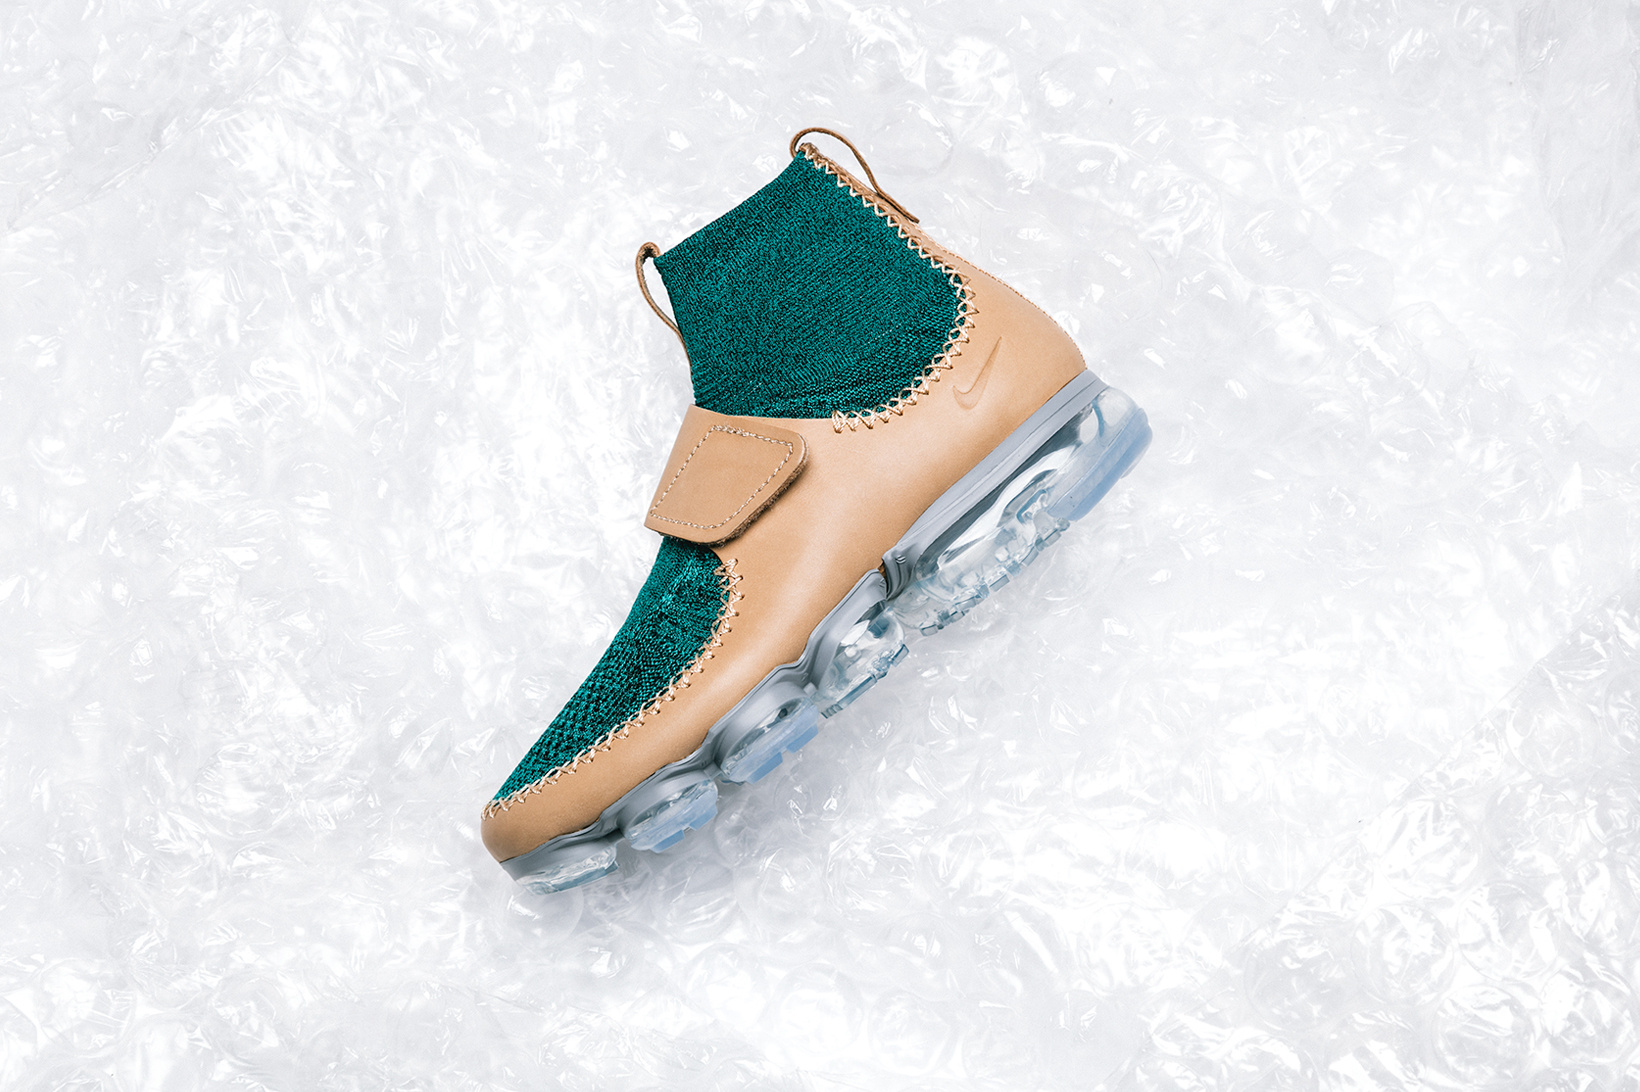 lethabo acid Lethabo Acid Surprises Fans By Dropping 3 New Joints [Listen] marc newson nikelab air vapormax closer look 7